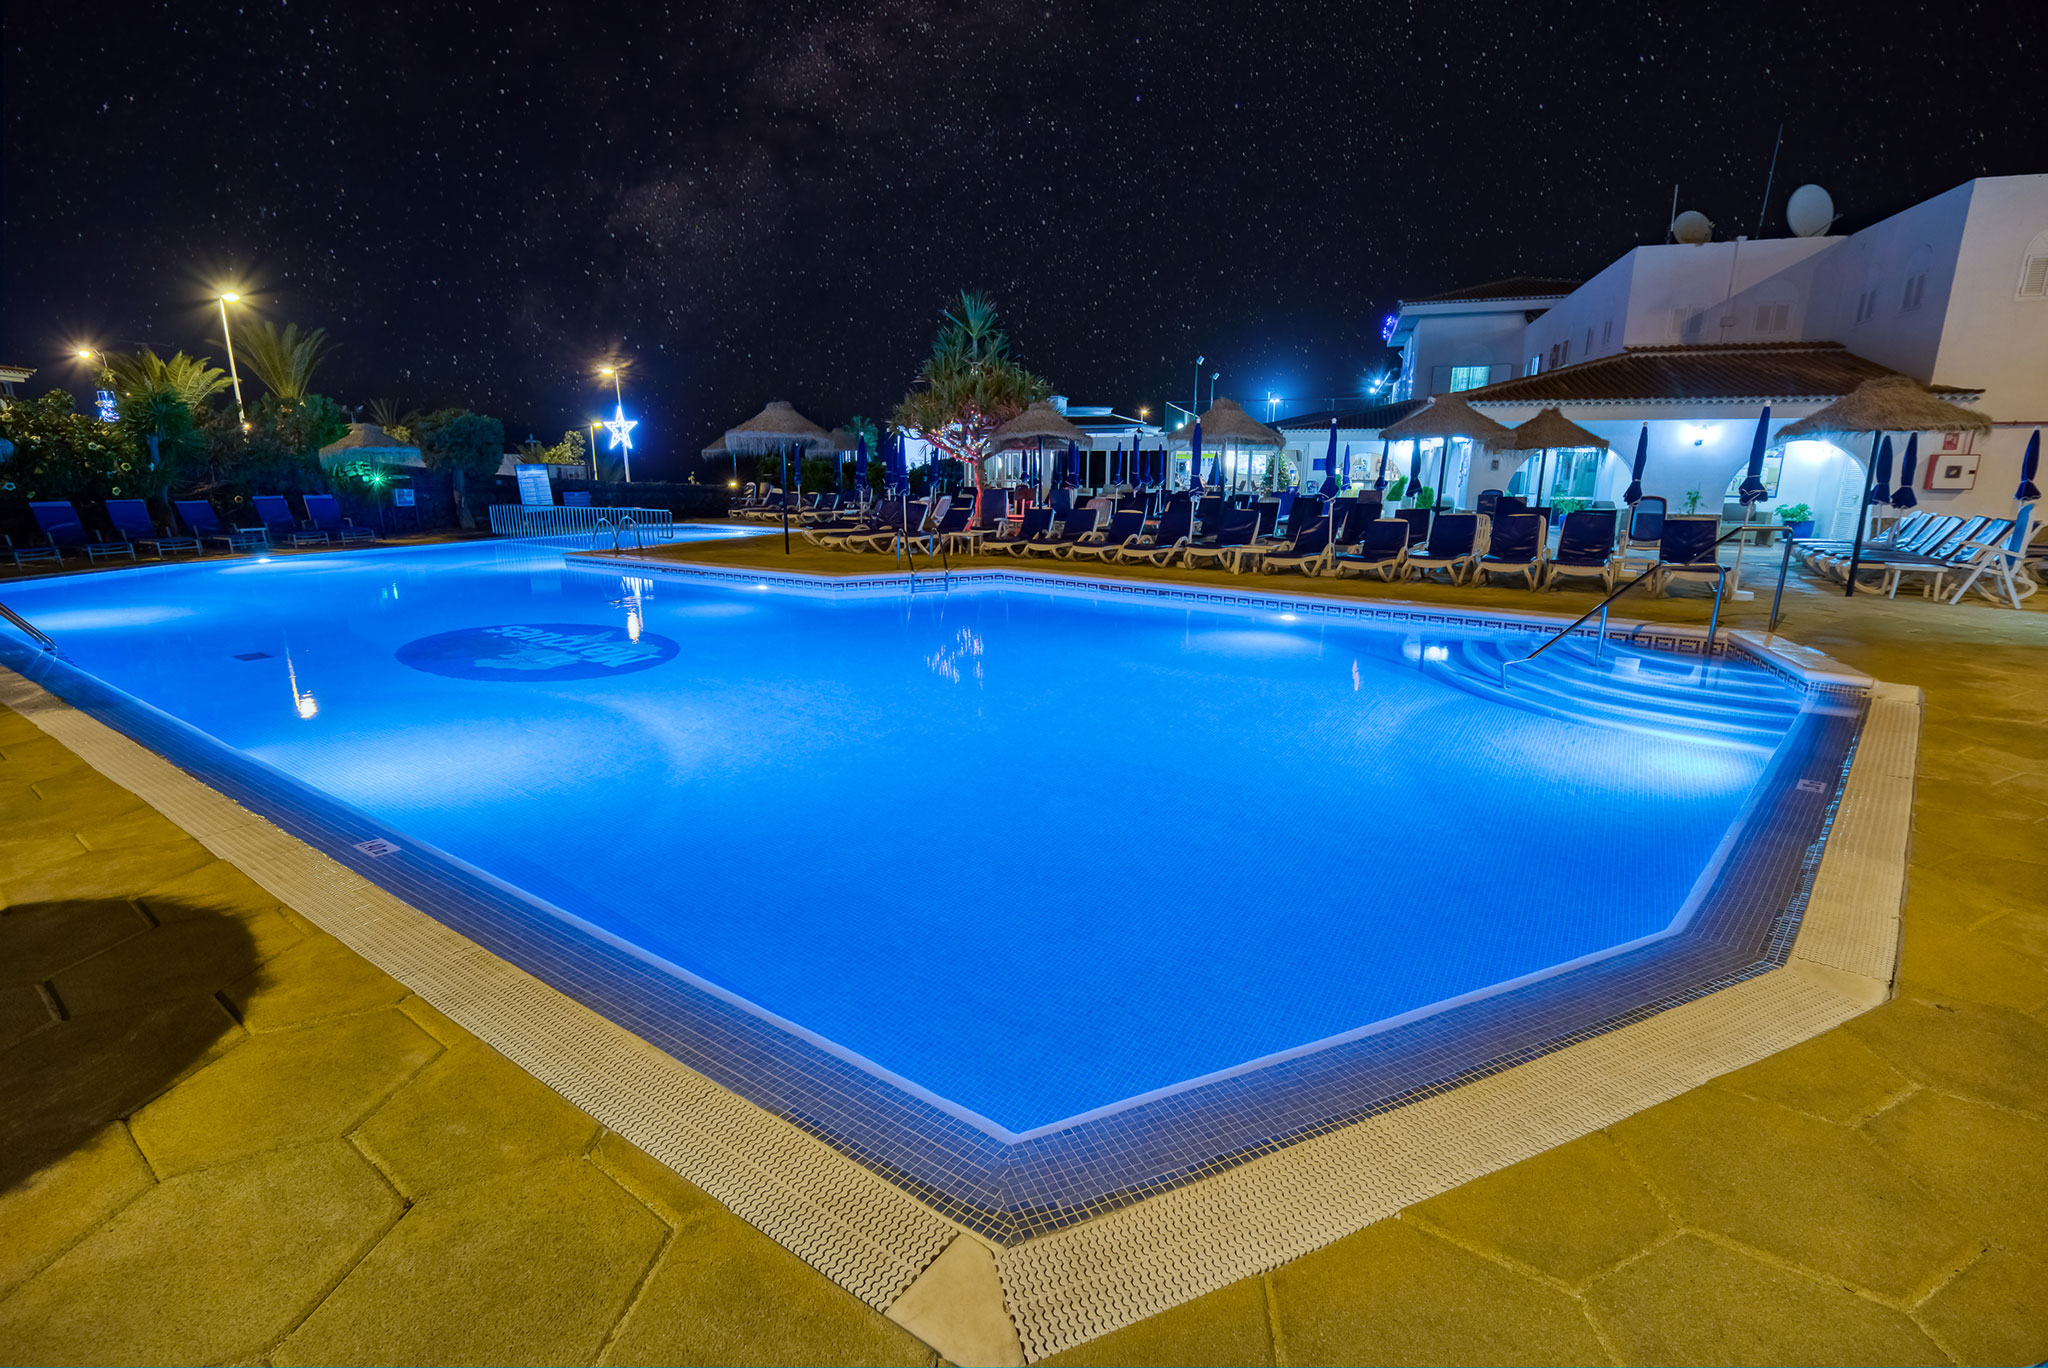 hotel-marques-pool-area-night